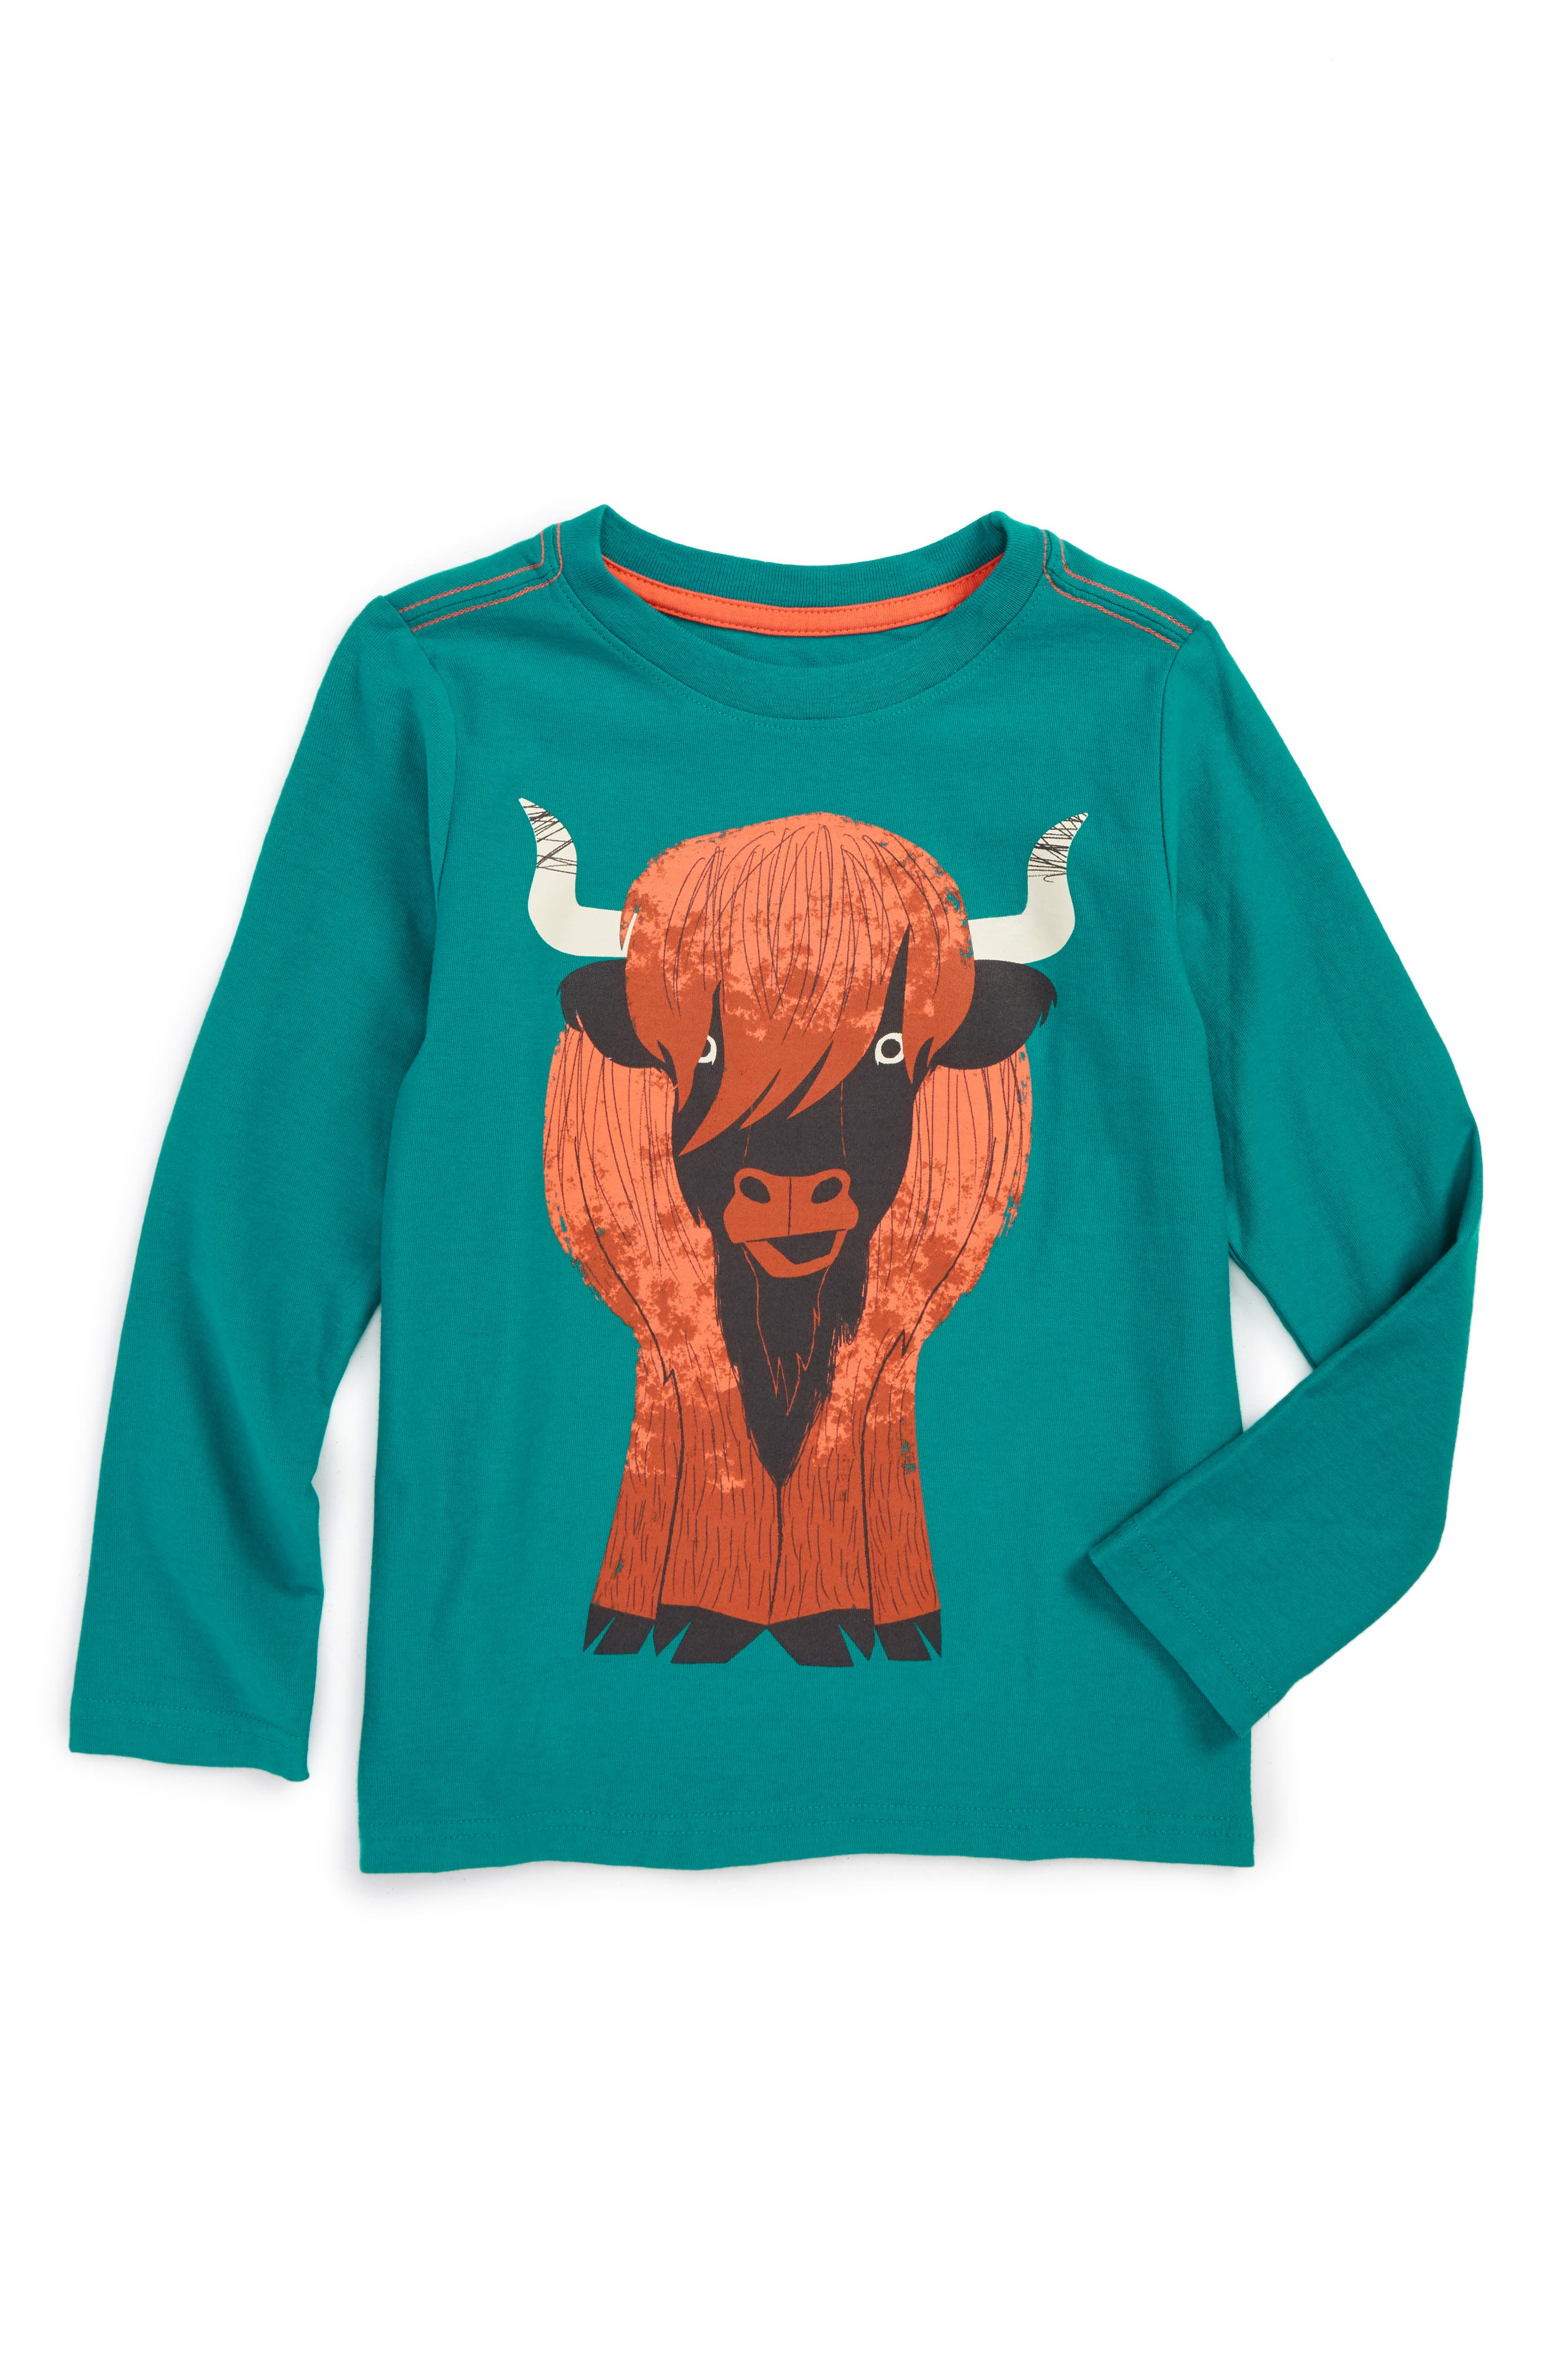 Alternate Image 1 Selected - Tea Collection Heeland Coo Graphic T-Shirt (Toddler Boys & Little Boys)